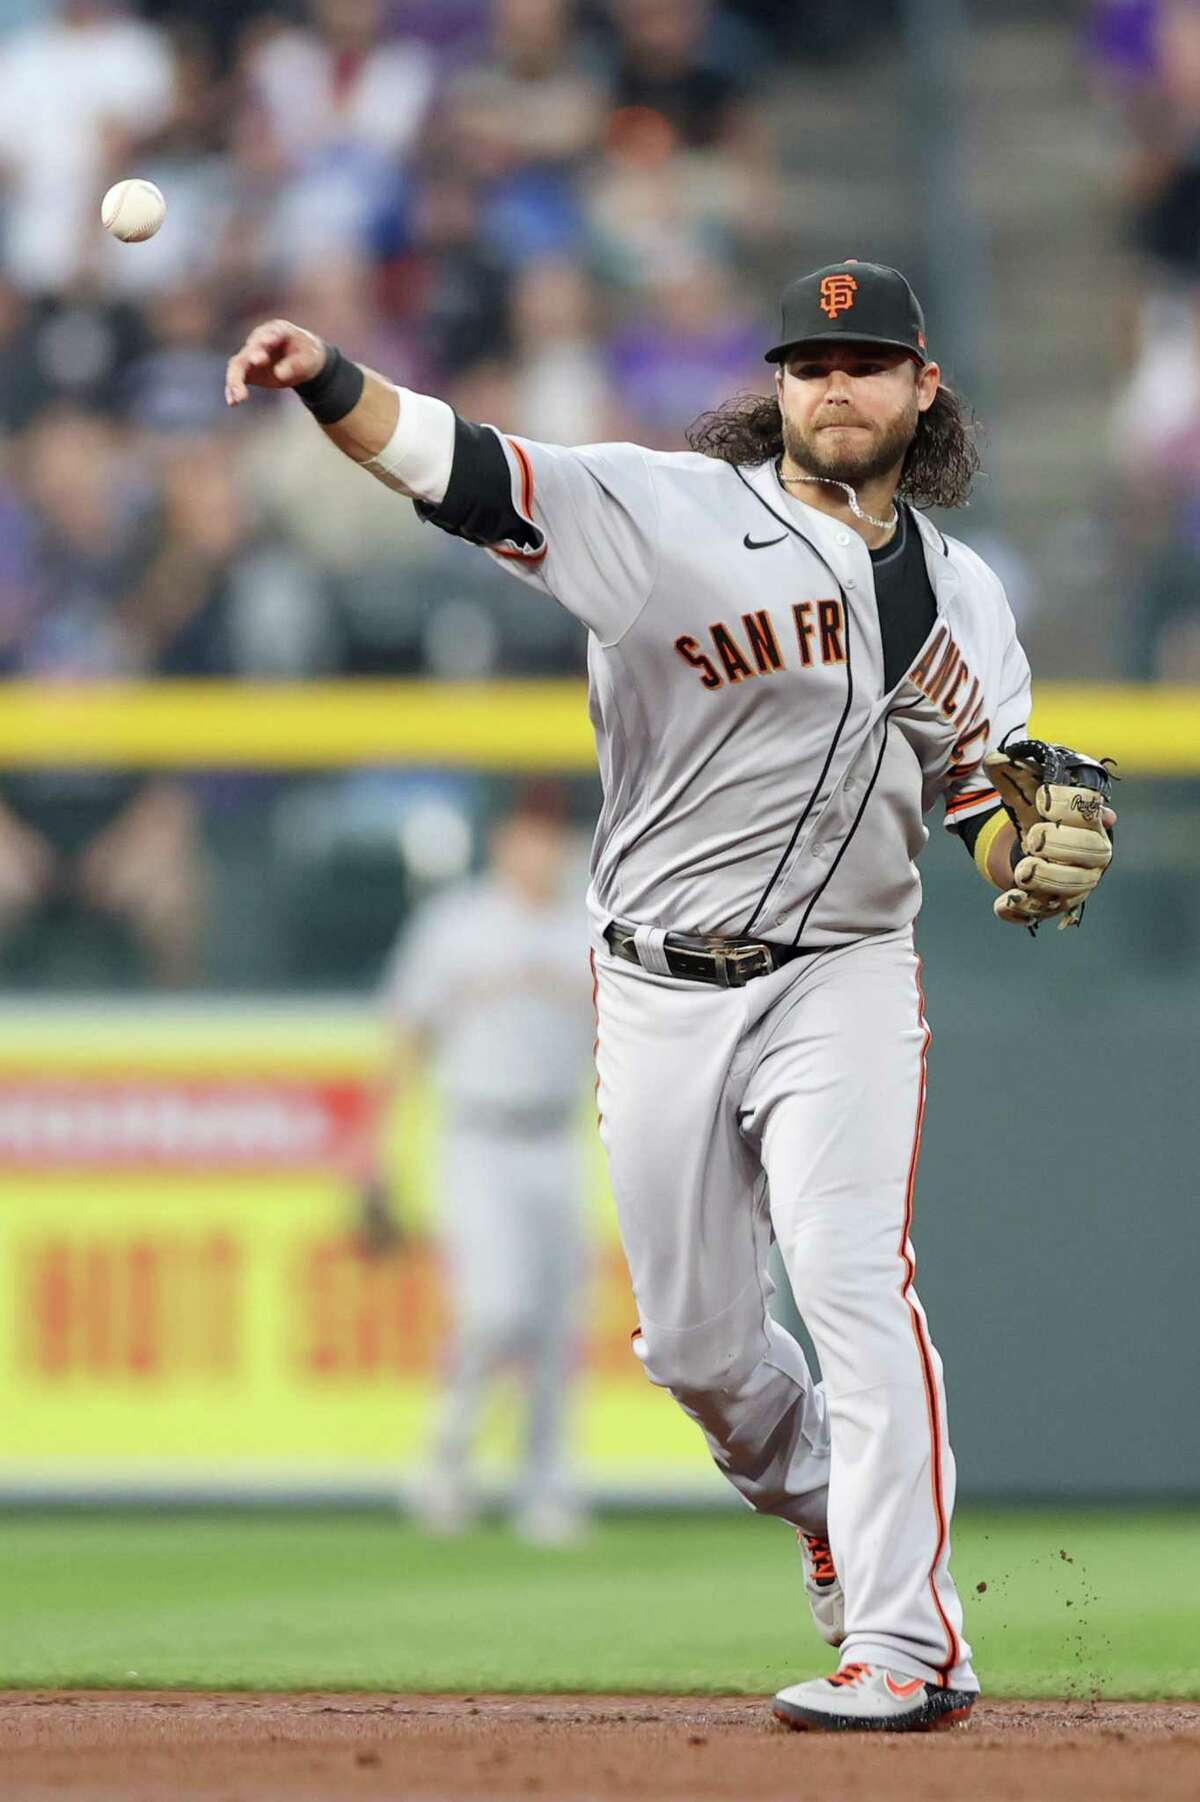 DENVER, COLORADO - SEPTEMBER 25: Brandon Crawford #35 of the San Francisco Giants throws out Raimel Tapia the Colorado Rockies in the first inning at Coors Field on September 25, 2021 in Denver, Colorado. (Photo by Matthew Stockman/Getty Images)